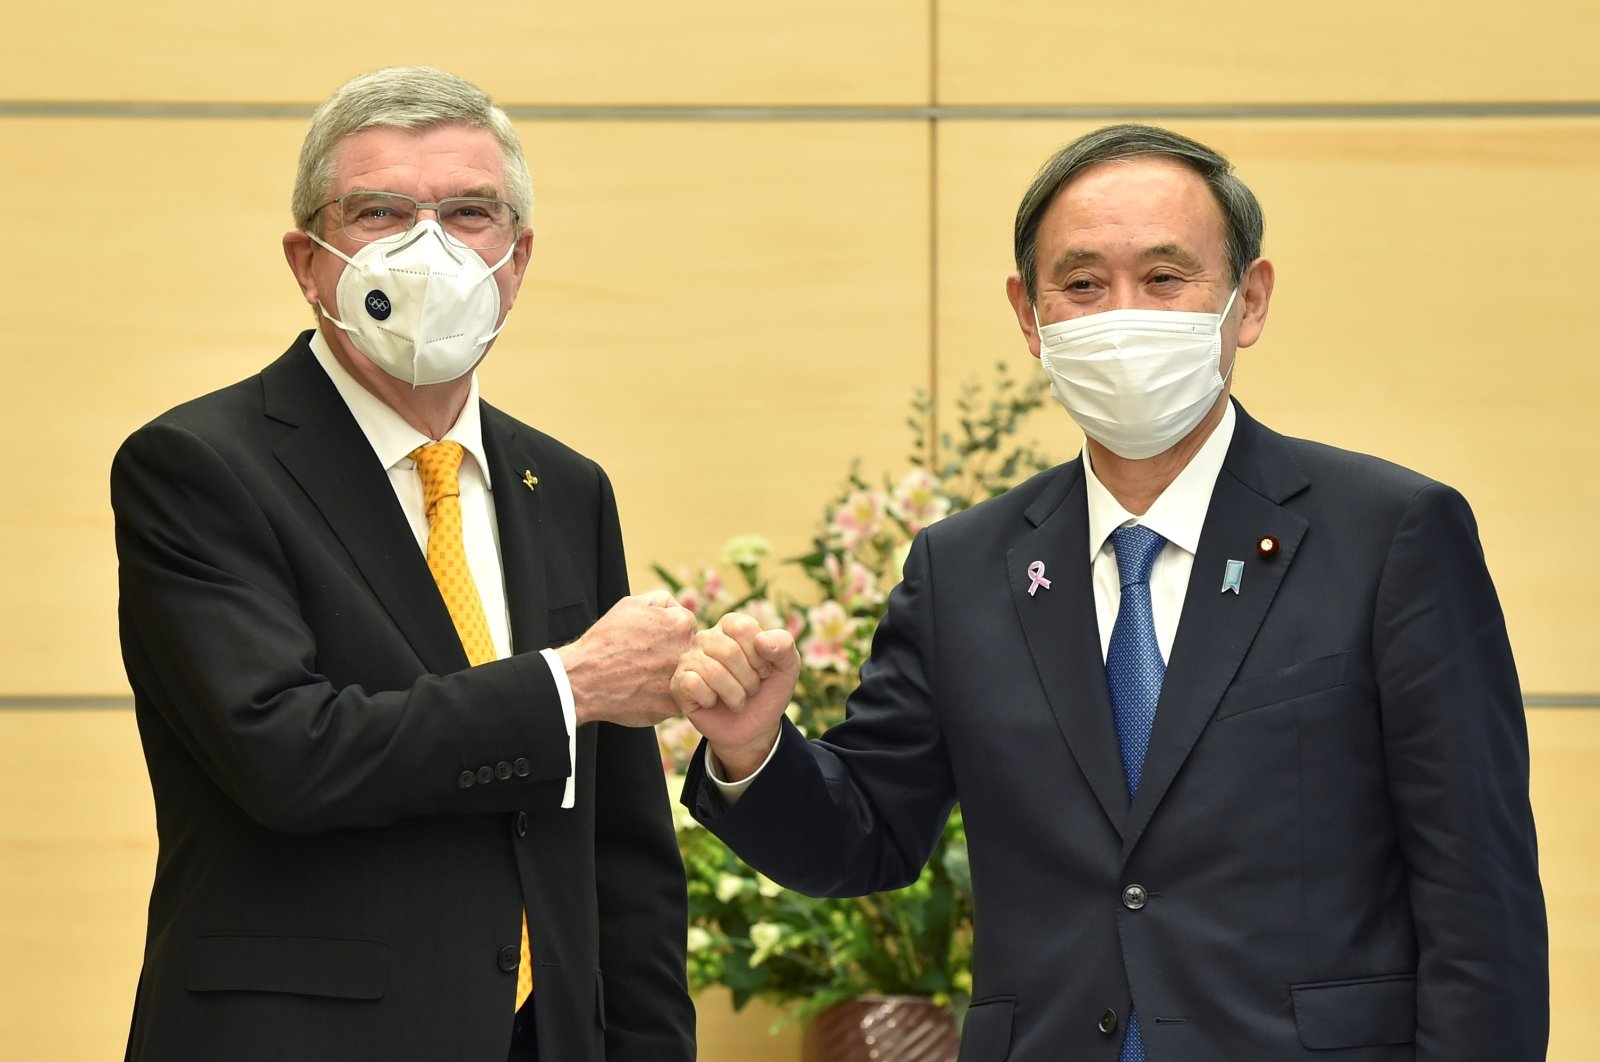 Japan's Prime Minister Yoshihide Suga (R) greets International Olympic Committee (IOC) President Thomas Bach, during their meeting in Tokyo, Japan, Nov. 16, 2020. (Reuters Photo)